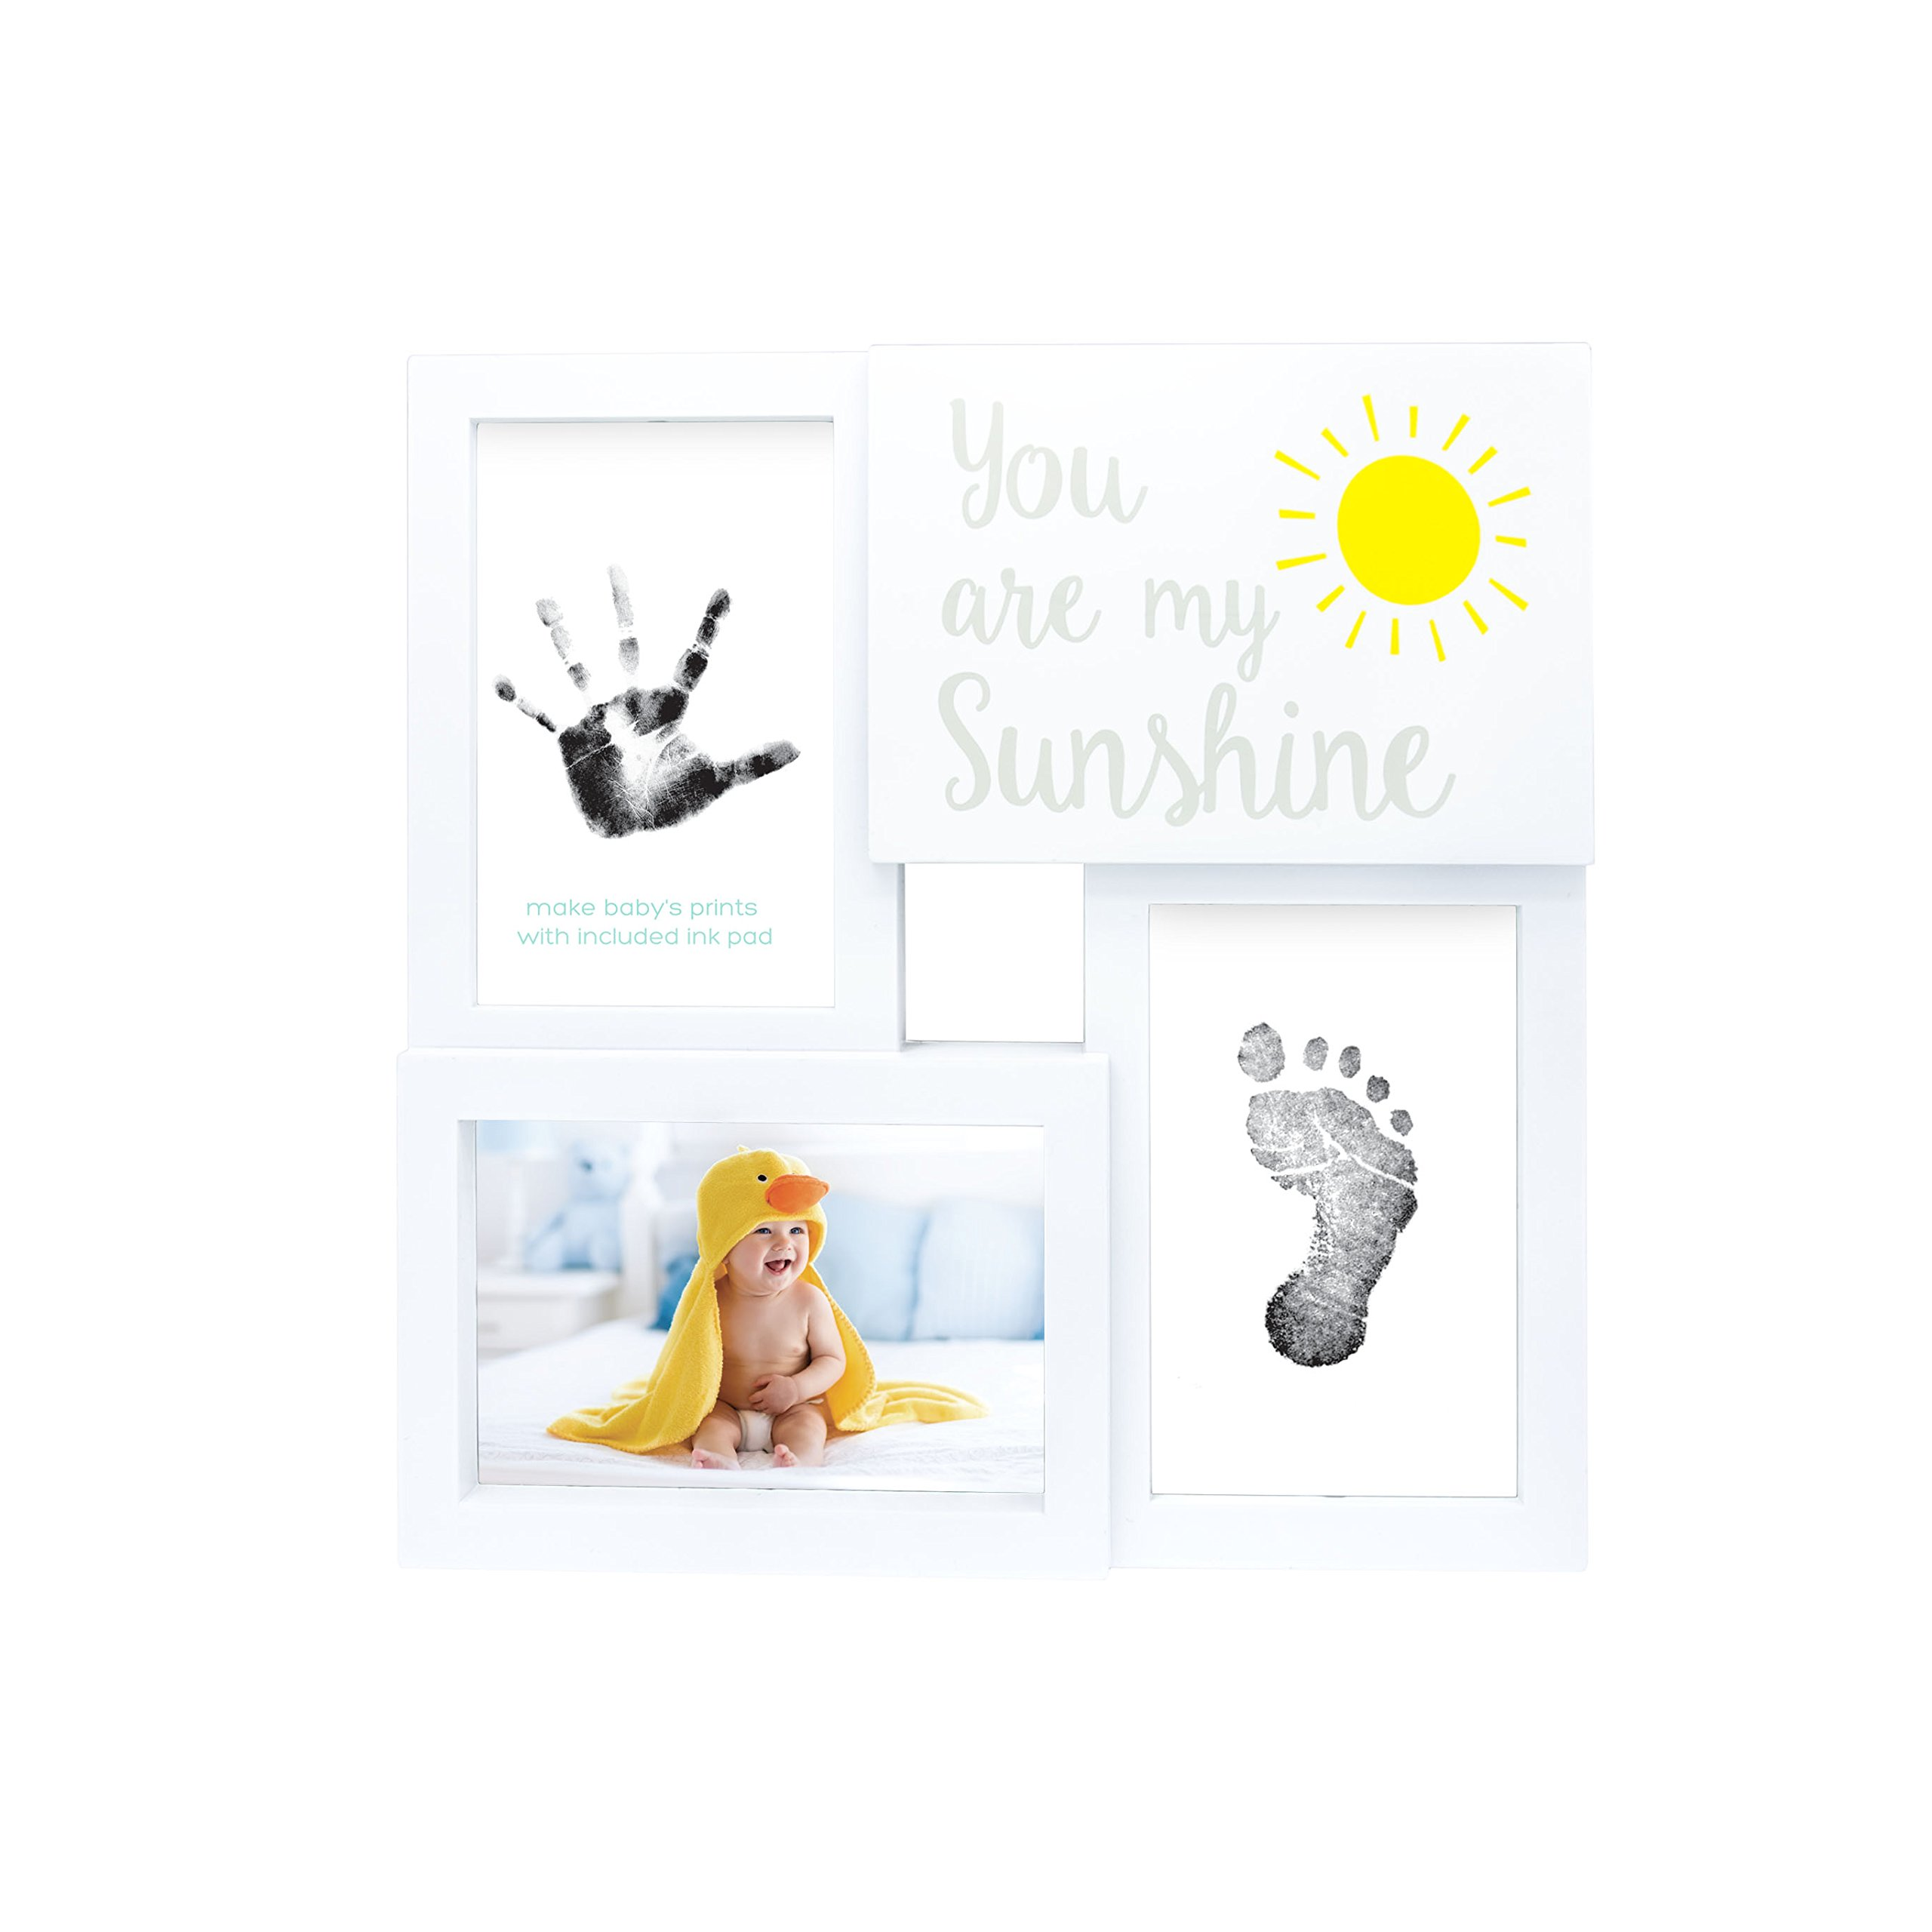 Tiny Ideas Baby Prints Collage Keepsake Frame with Included Ink Pad, You are My Sunshine, White/Black